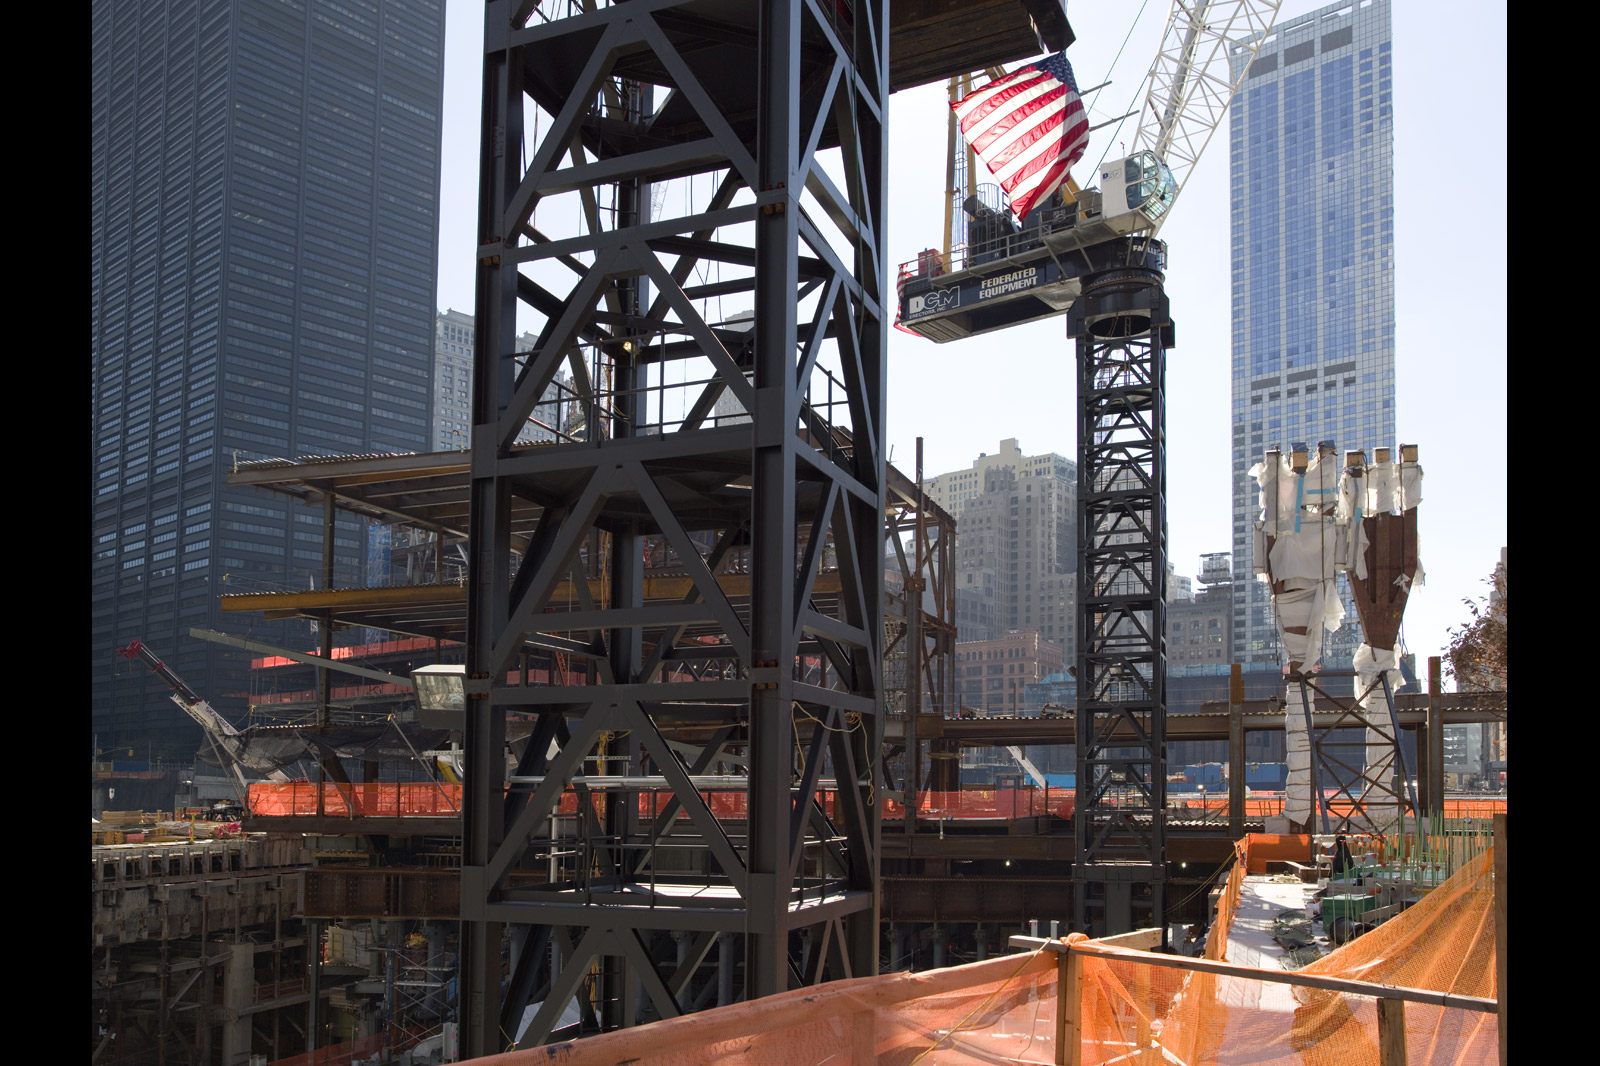 Looking from the same vantage point at street level in November, across the site of the new transit hub, Meyerowitz saw the flag hanging from the crane and recalled the shot he had made almost nine years earlier. Two tridents from the original World Trade Center construction appear in their temporary location at right — they will be permanently installed as part of the memorial